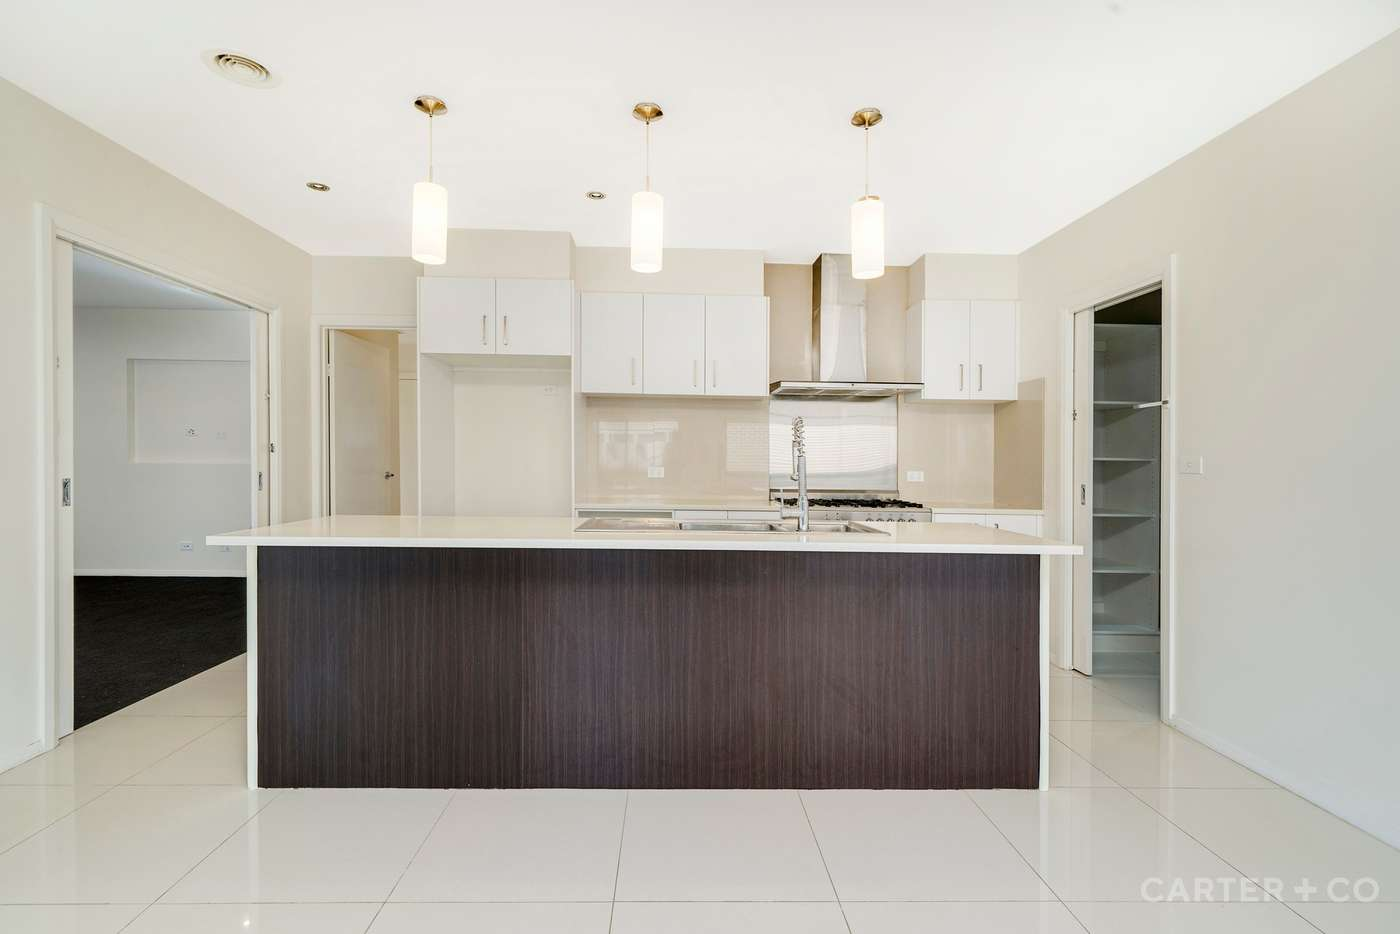 Fifth view of Homely house listing, 29 Hibberd Crescent, Forde ACT 2914